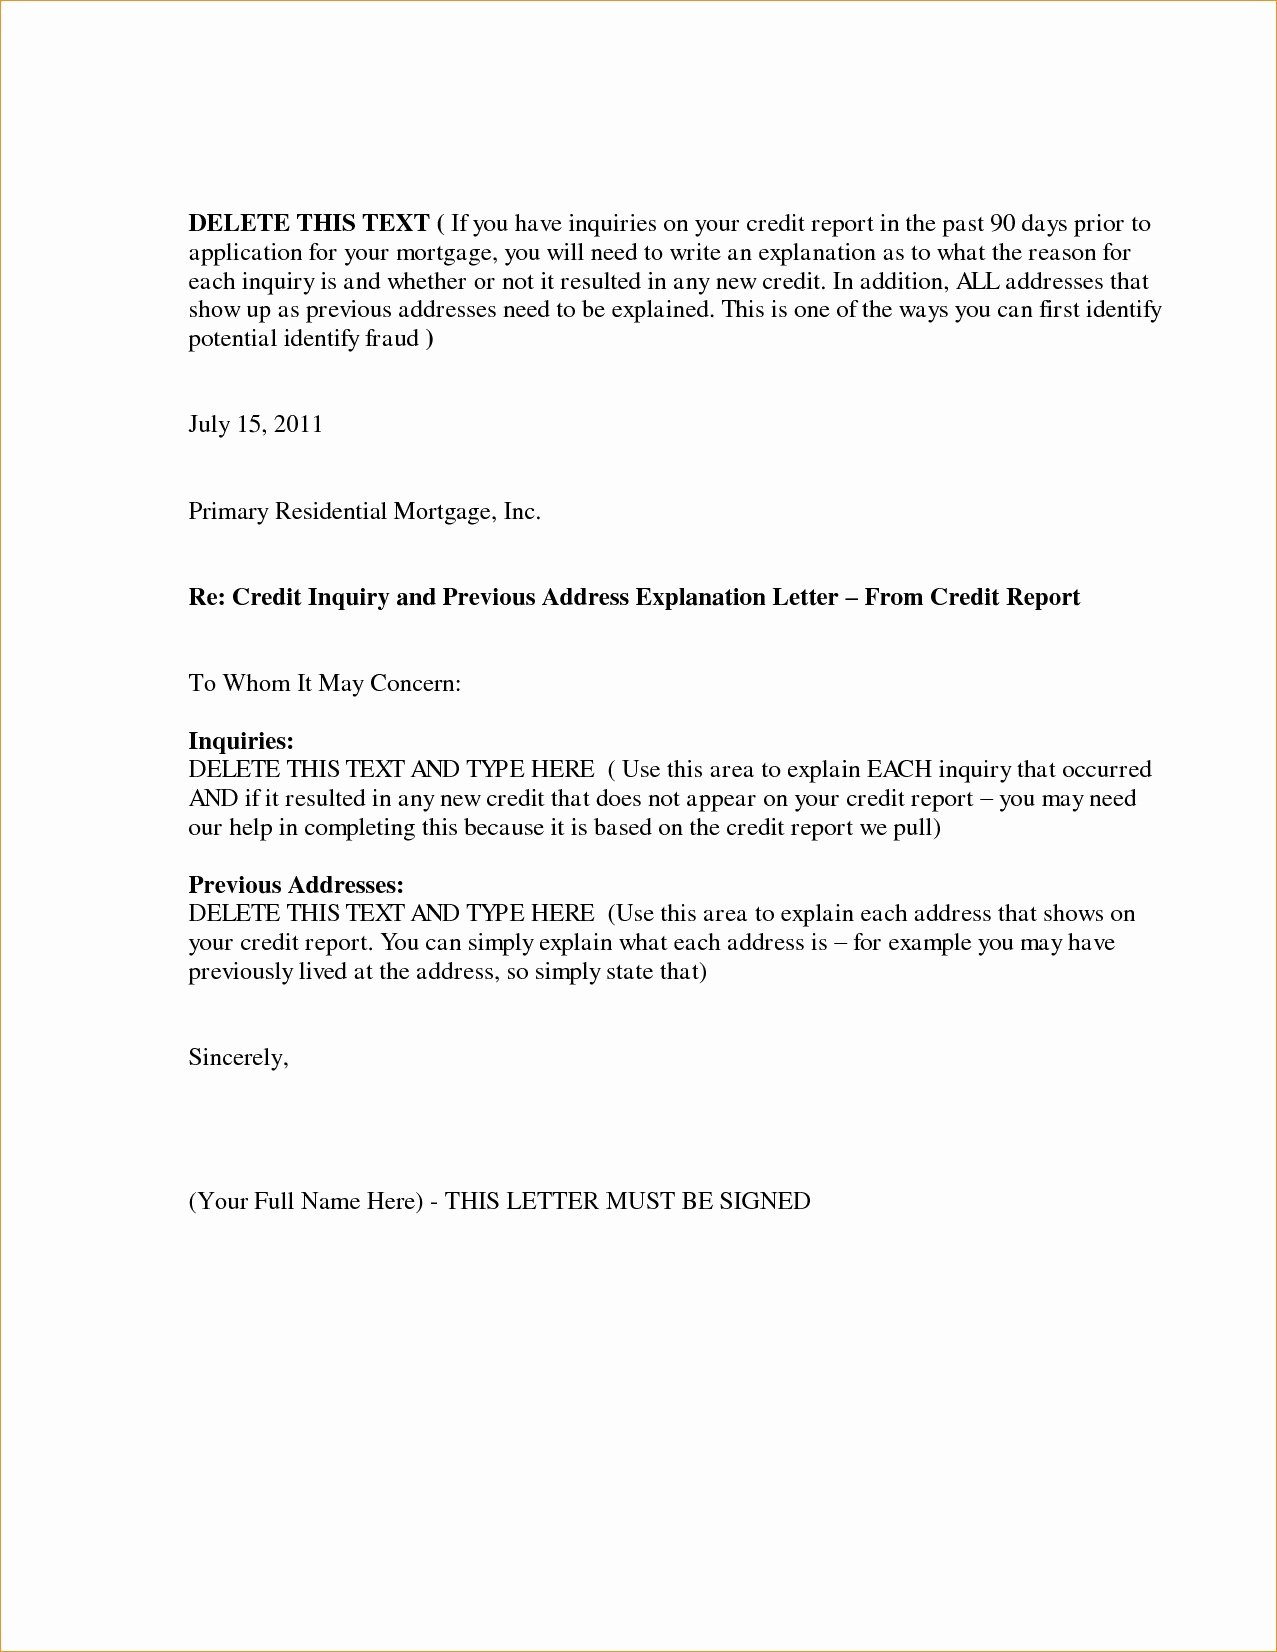 Credit Explanation Letter Template Beautiful Letter Explanation for Credit Inquiries Template Examples